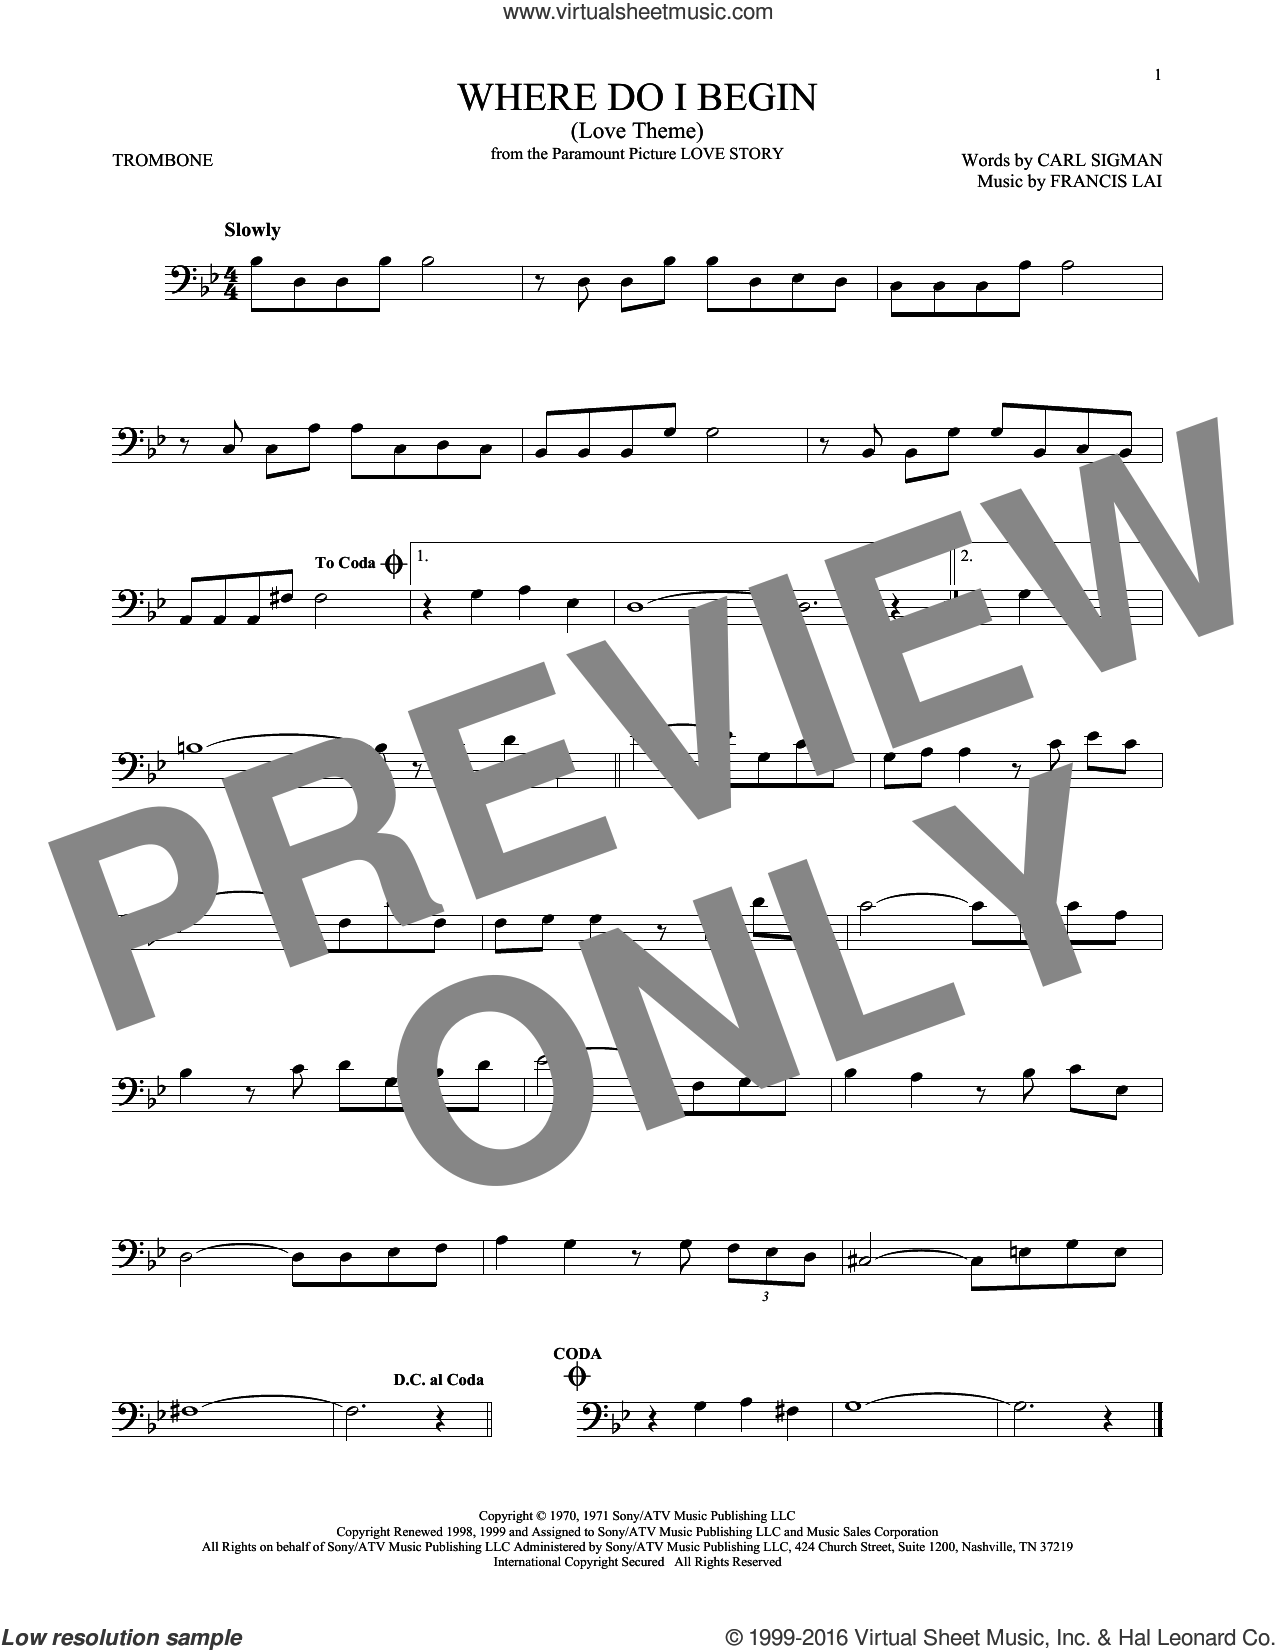 Where Do I Begin (Love Theme) sheet music for trombone solo by Andy Williams, Carl Sigman and Francis Lai, intermediate skill level